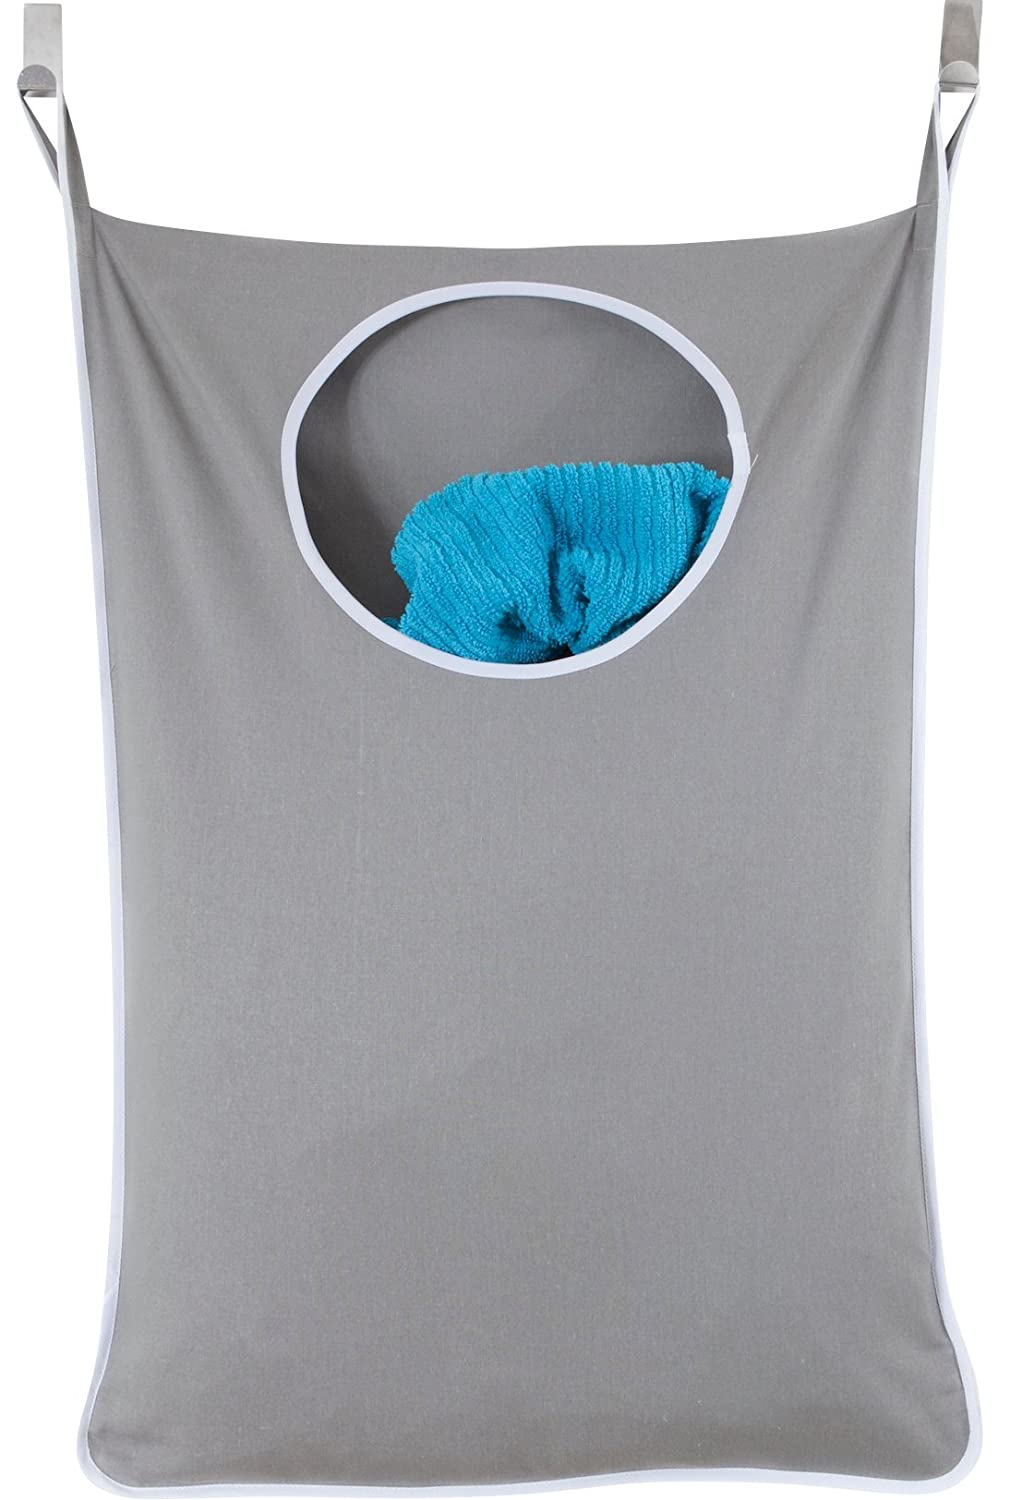 Laundry Nook, Door-Hanging Laundry Hamper with Stainless Steel Hooks, Gray, Large Size